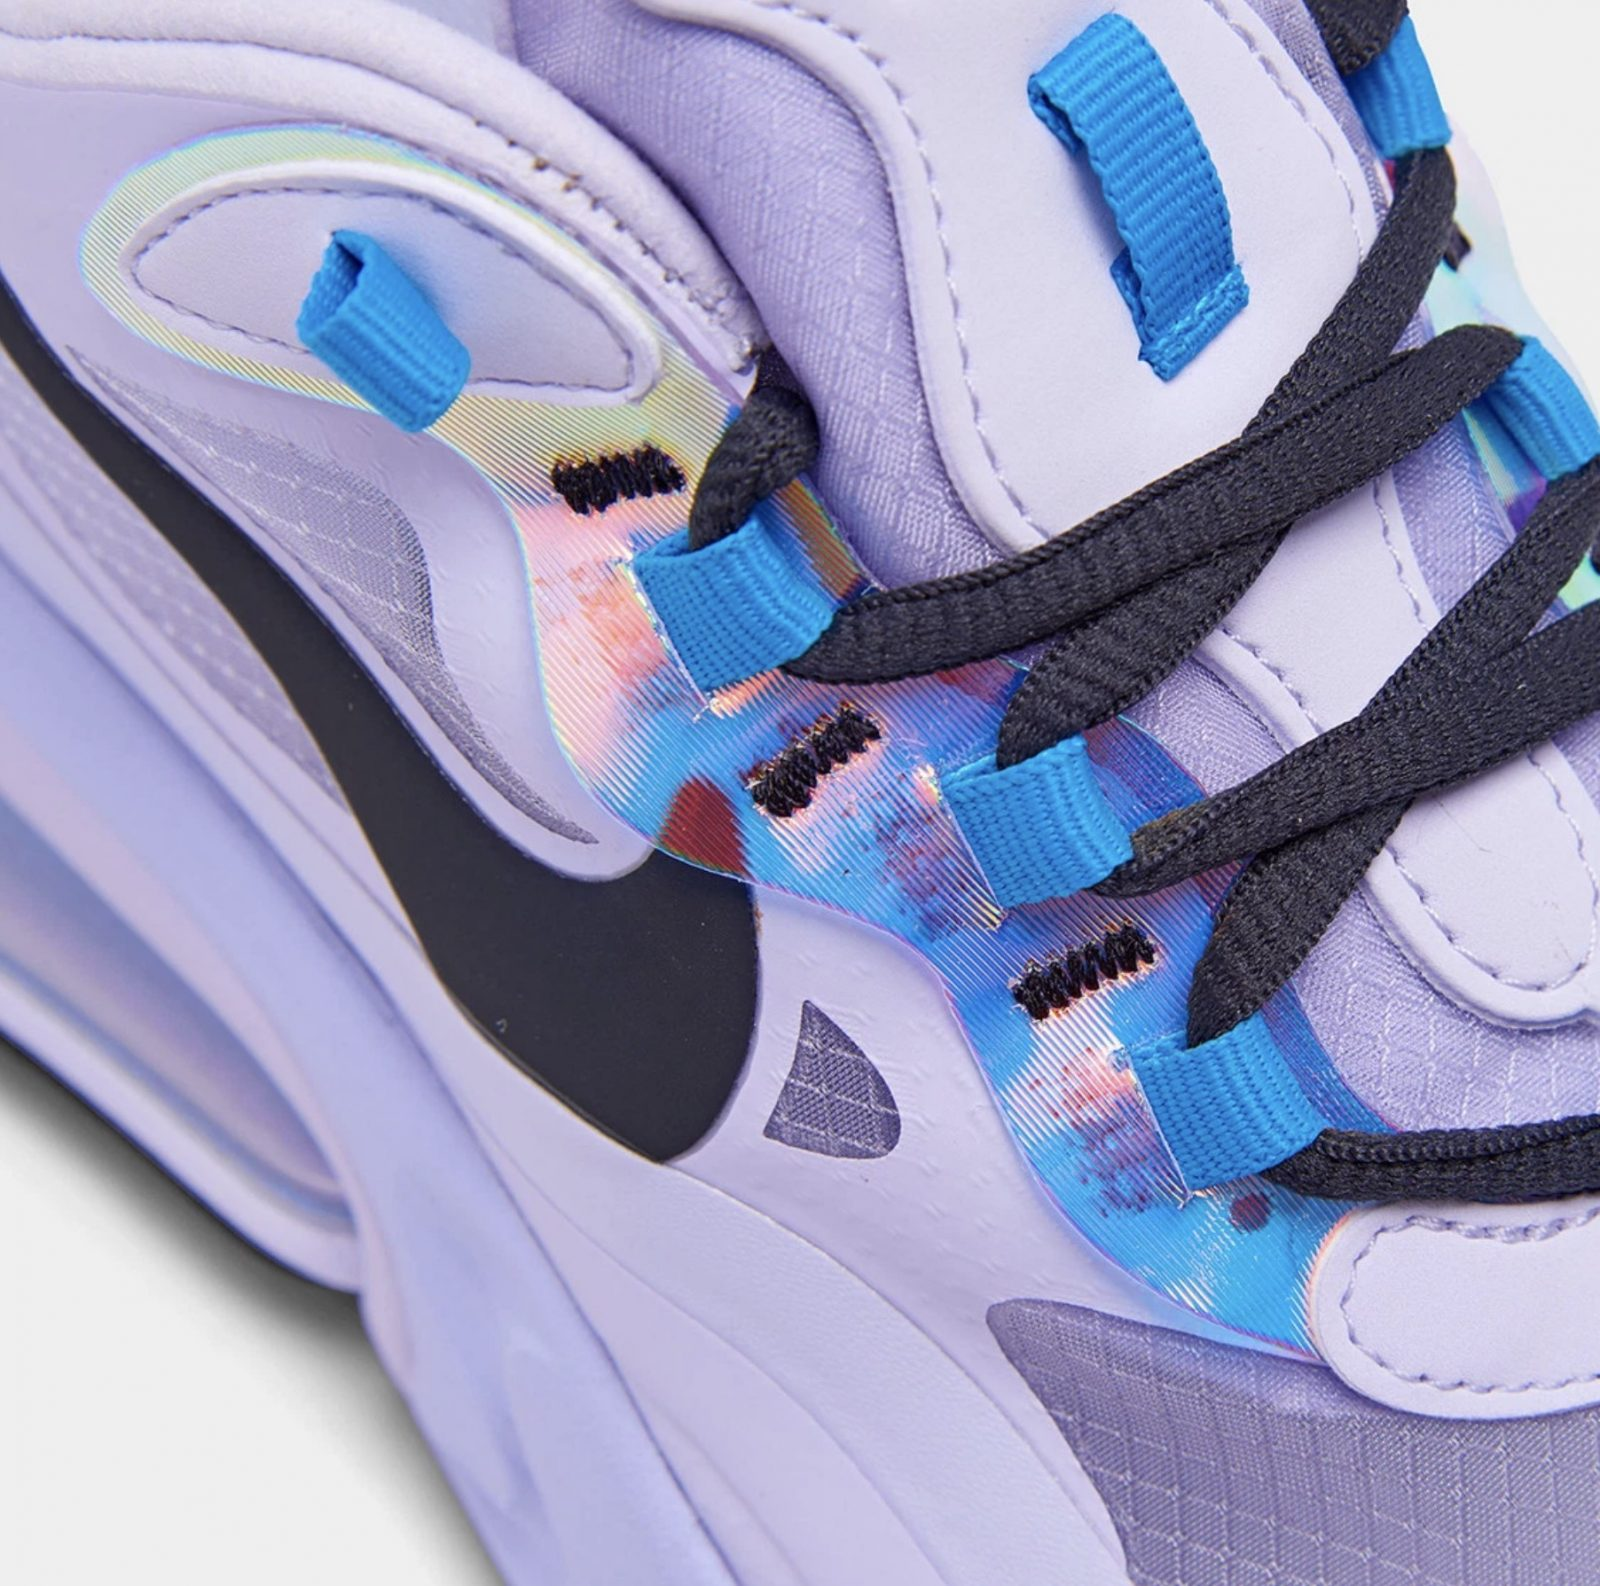 Purple Hues Cover This Nike Air Max 270 React Amethyst Tint With